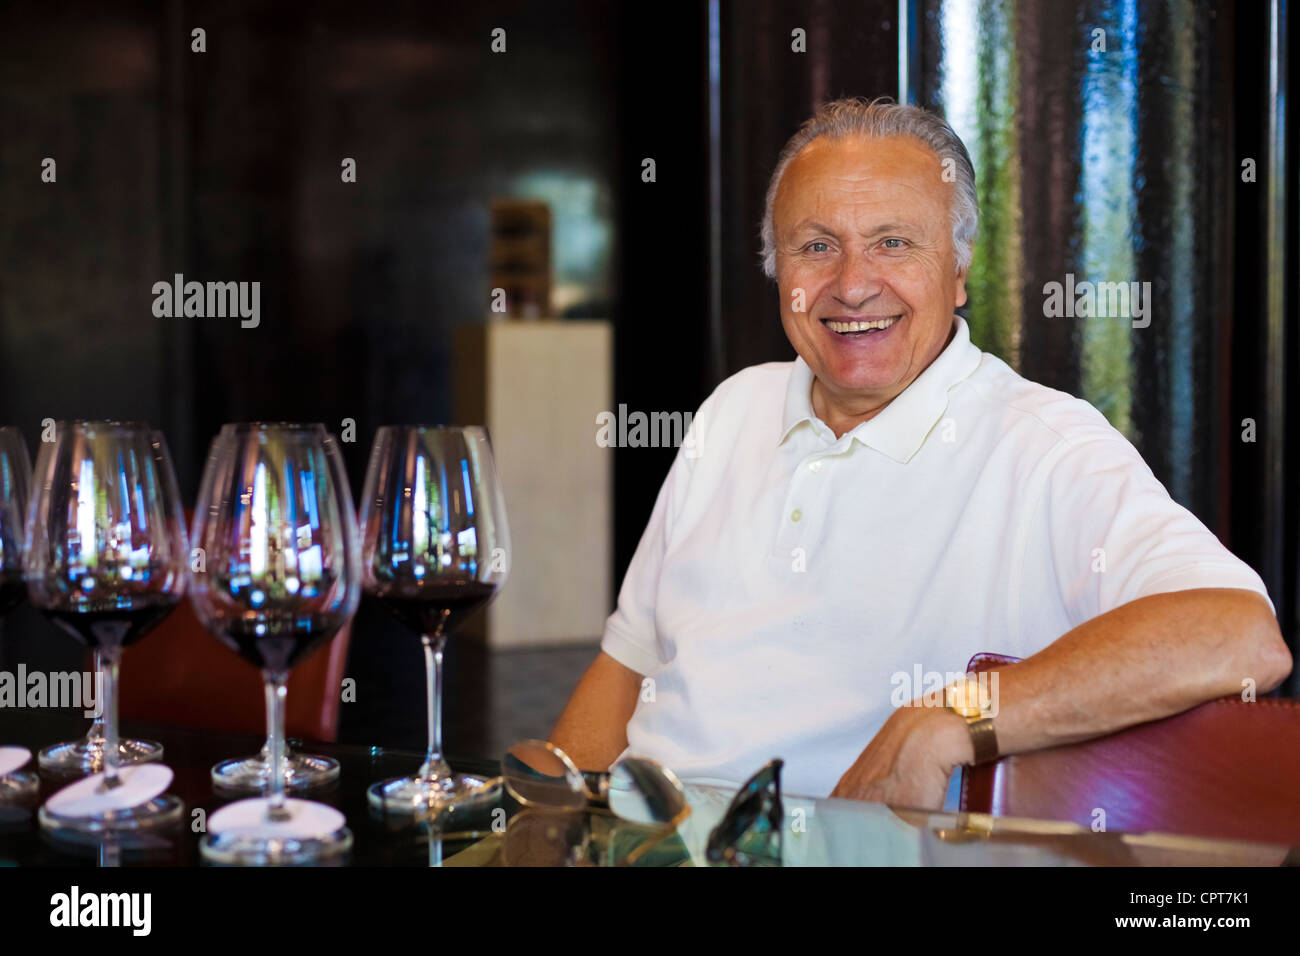 Angelo GAJA, a famous Italian wine-grower , A smiling epicurean